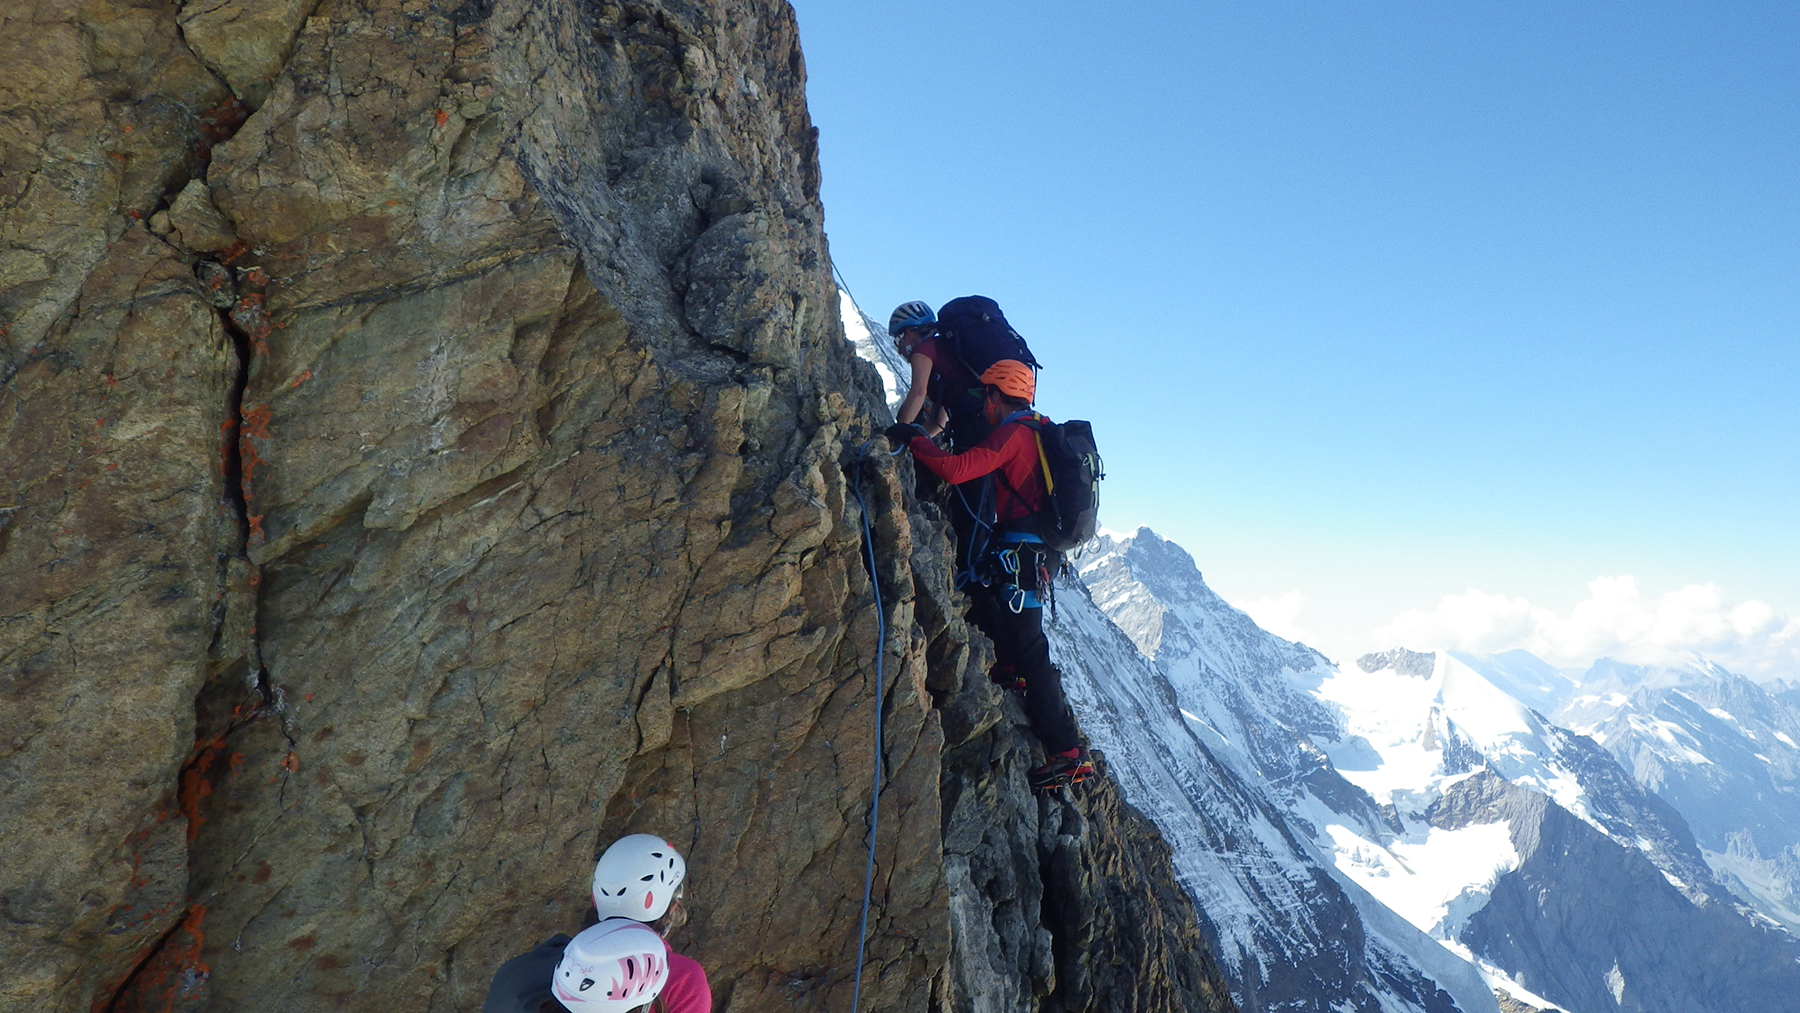 On a traverse on the Eiger on August 28, 2016, just below the summit, Guillaume Omont (in orange) leads, setting up anchors for the team. PHOTO: Captain Antoine Labranche